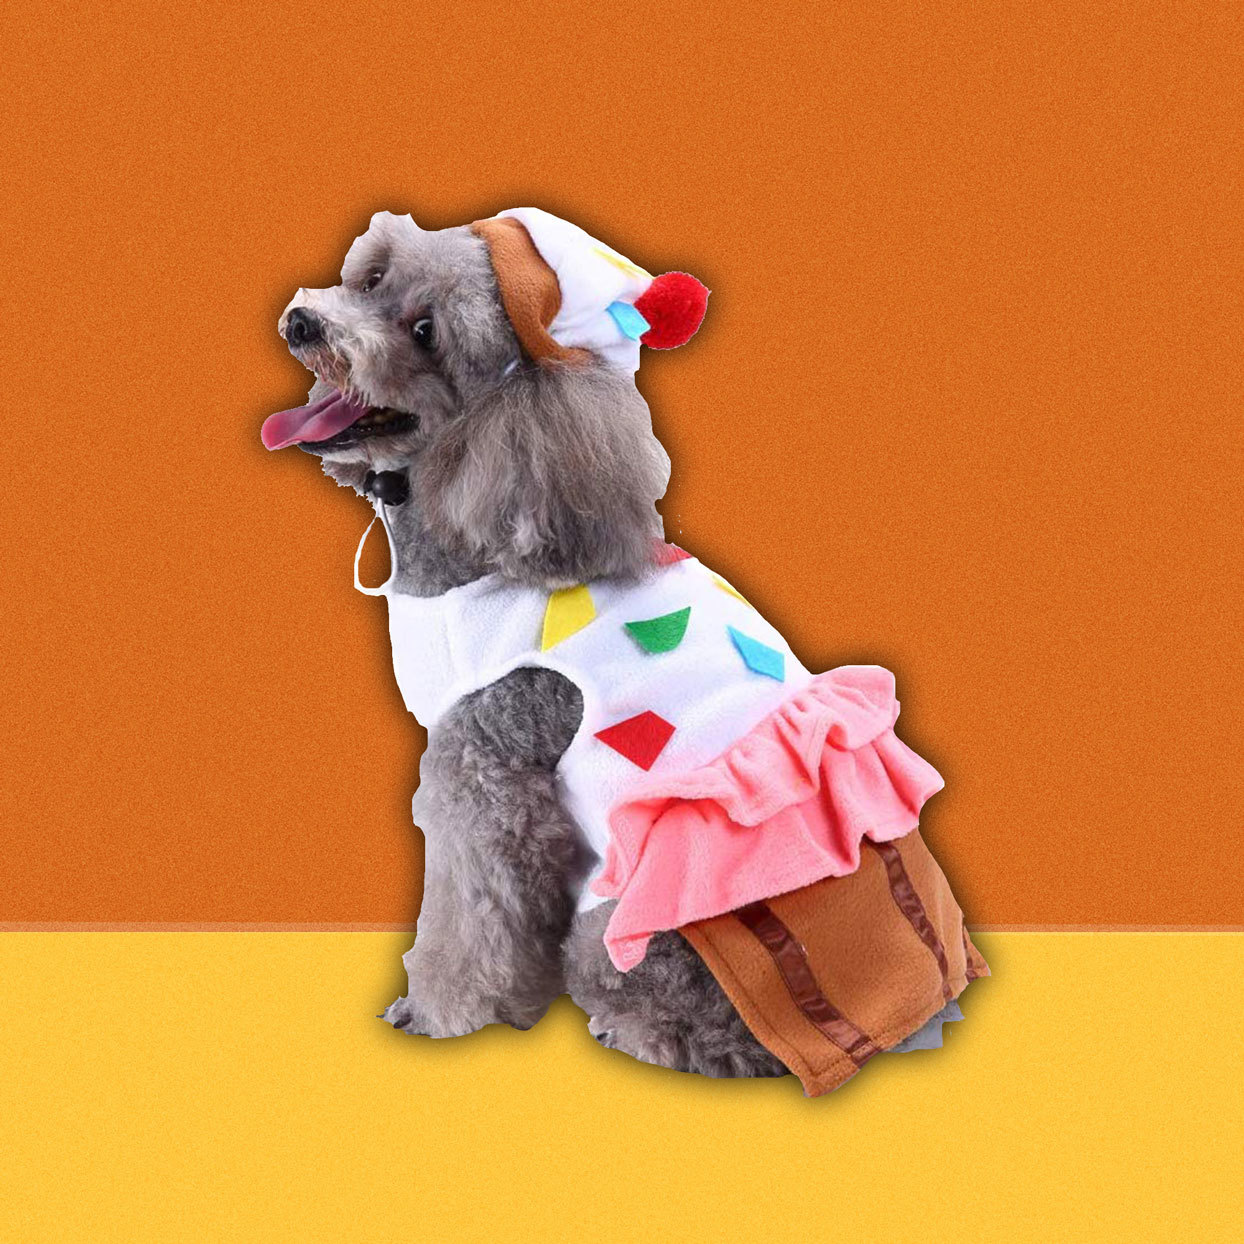 dog wearing a cupcake costume